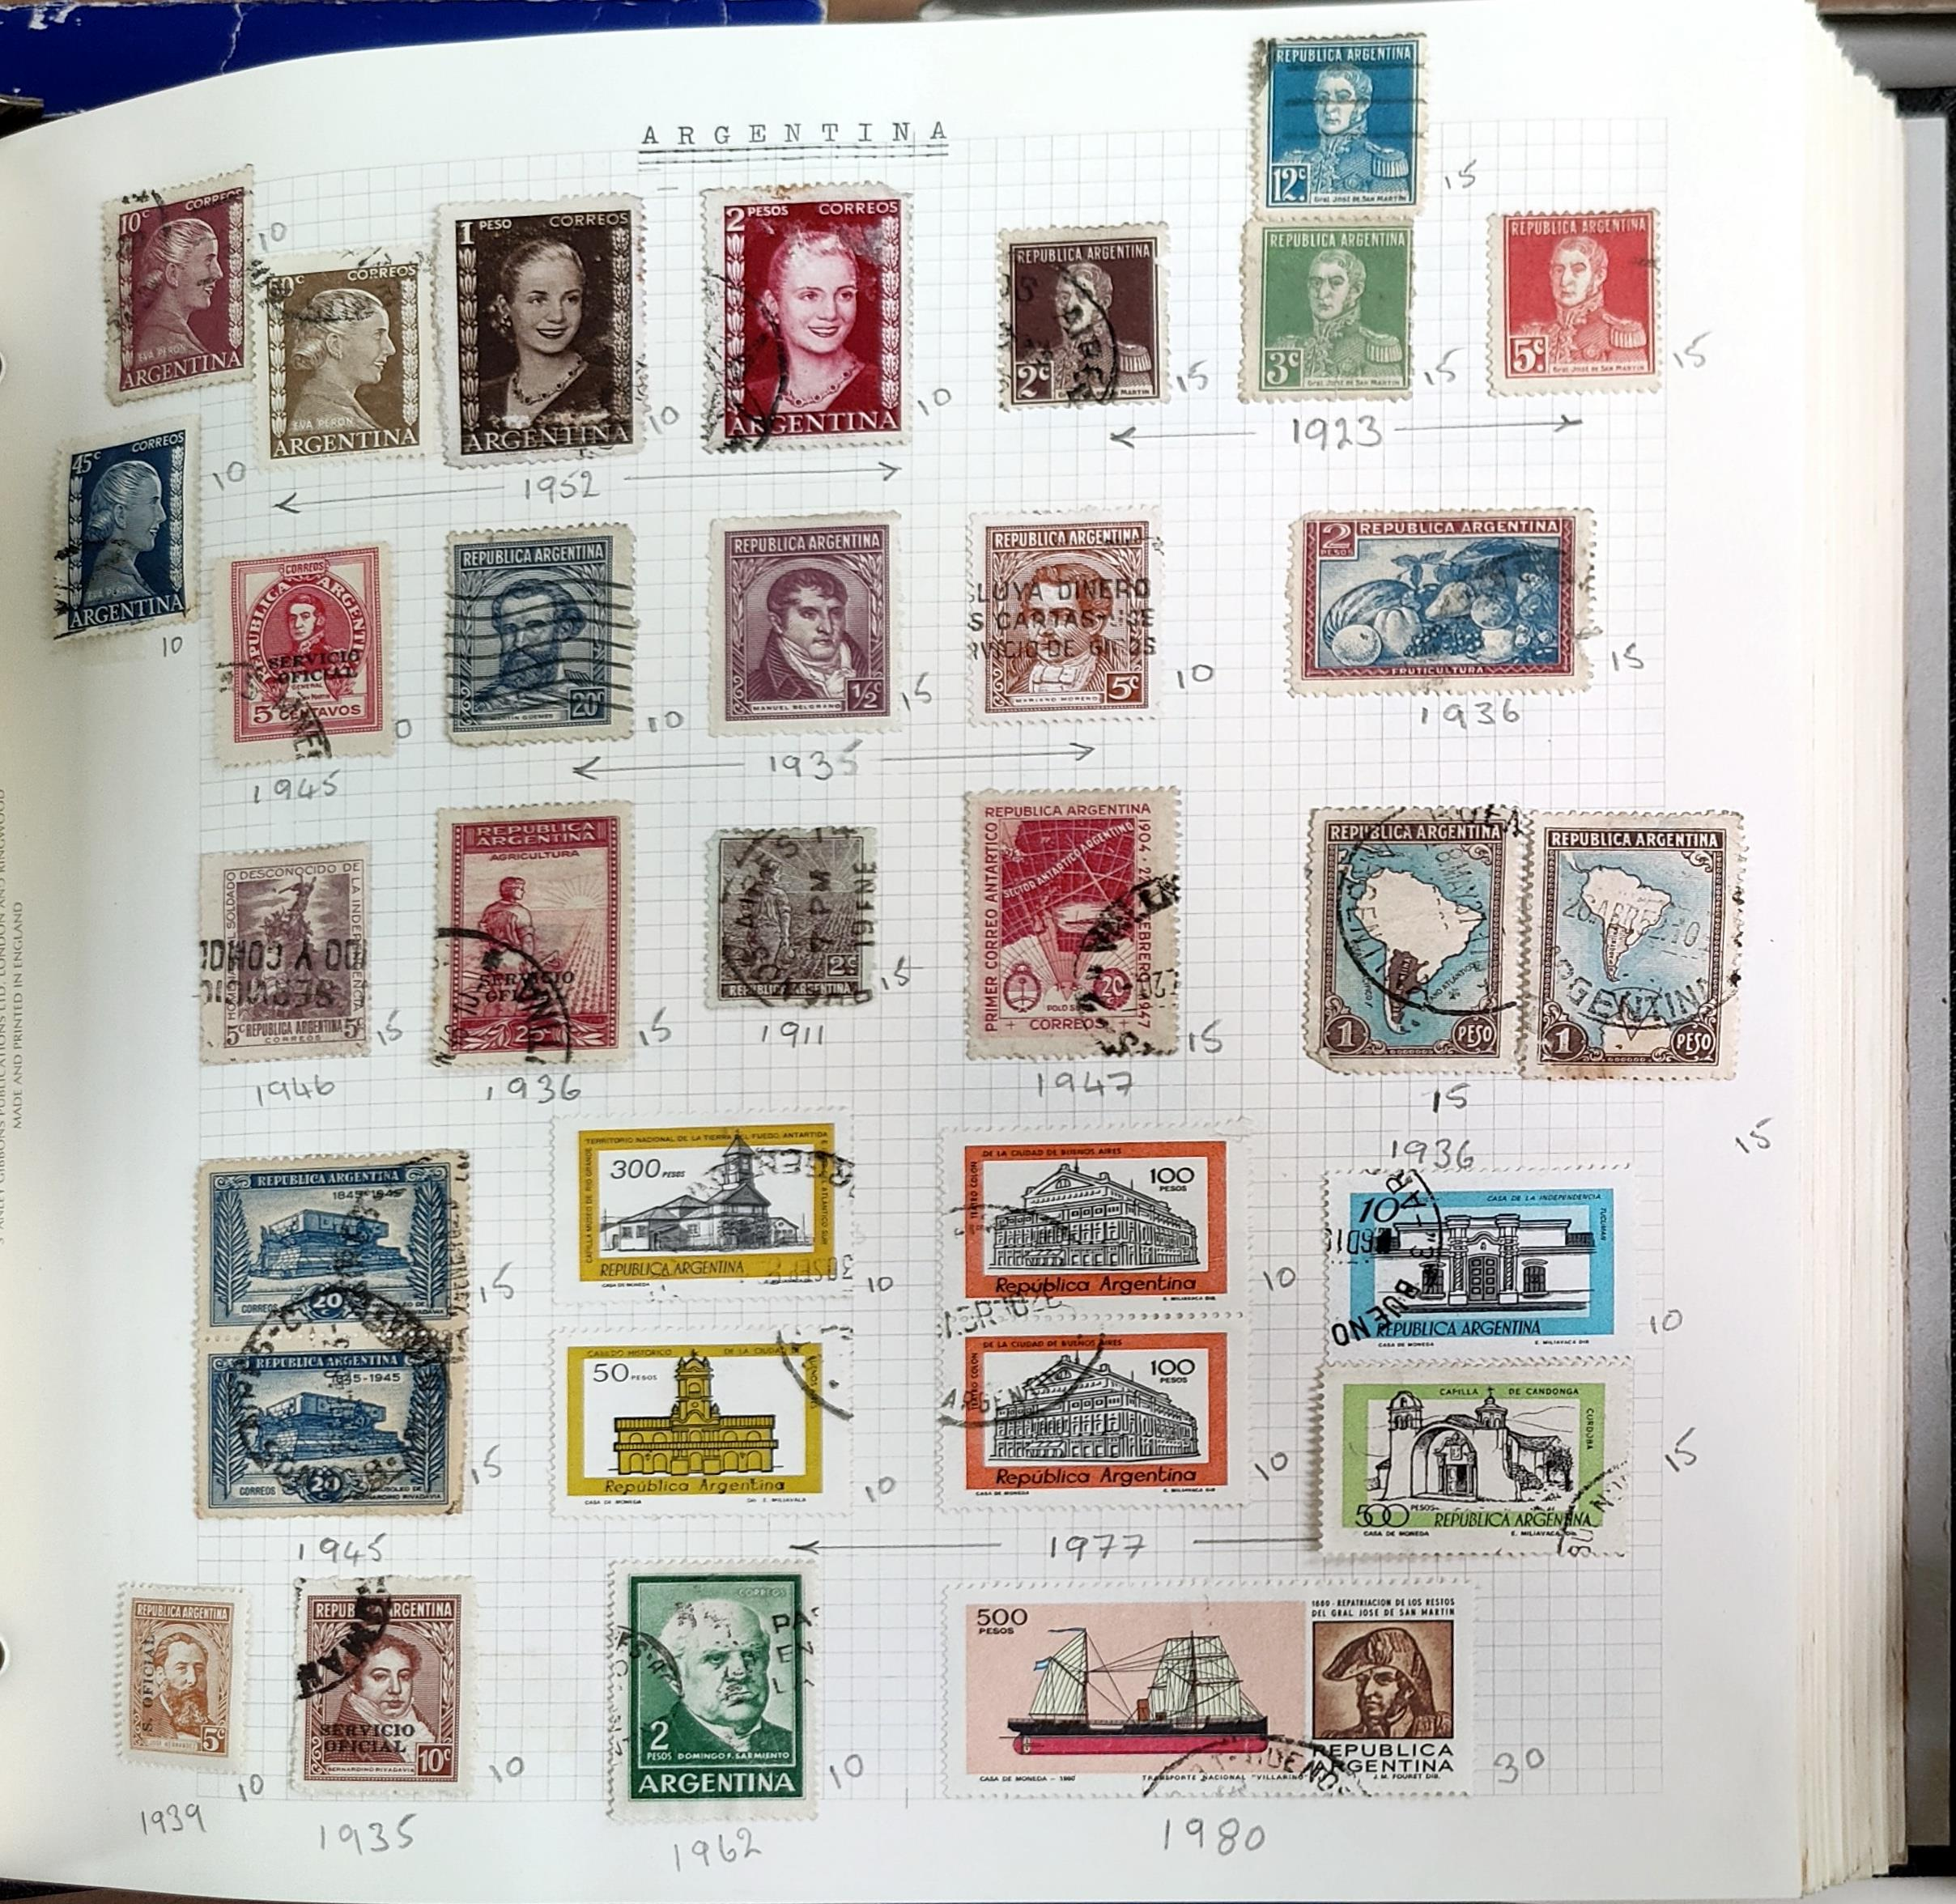 A very nicely presented world collection of stamps in 4 Stanley Gibbons Devon loose-leaf albums with